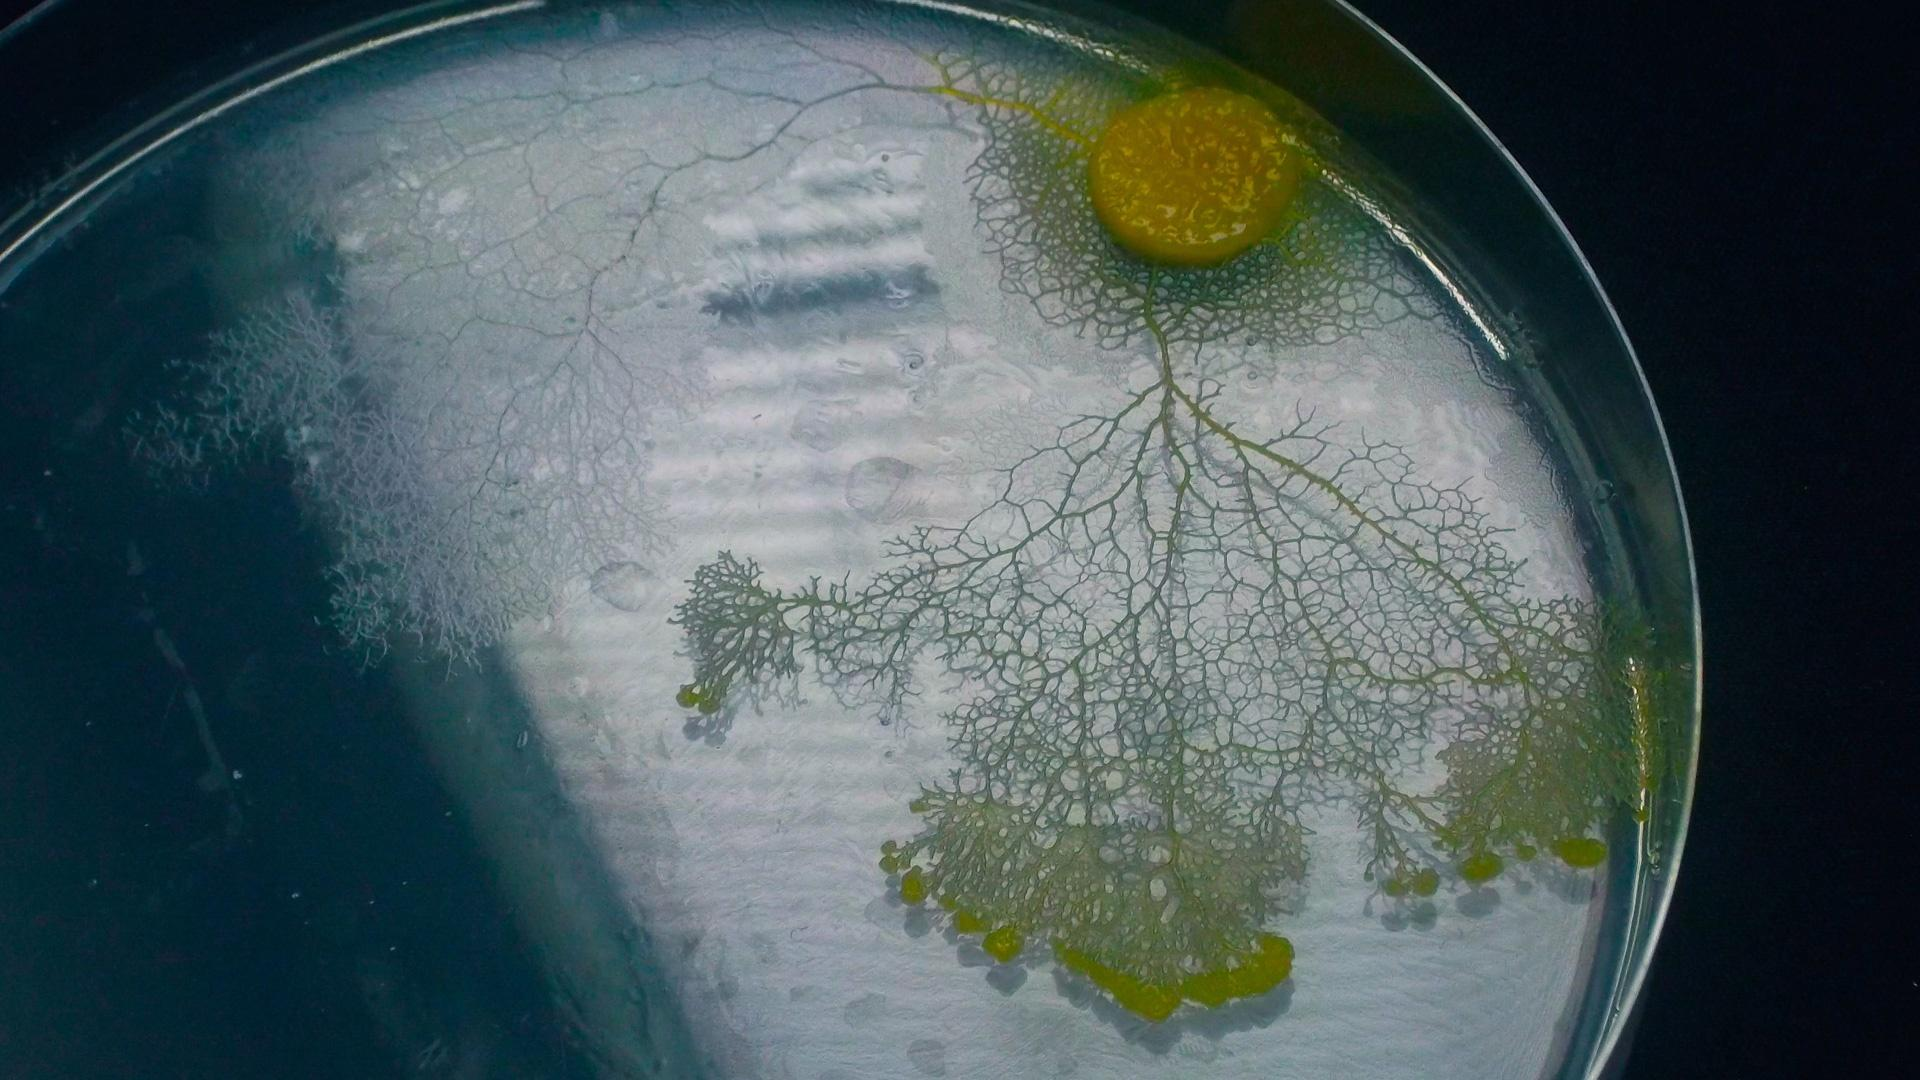 Slime Mold Smarts Hero